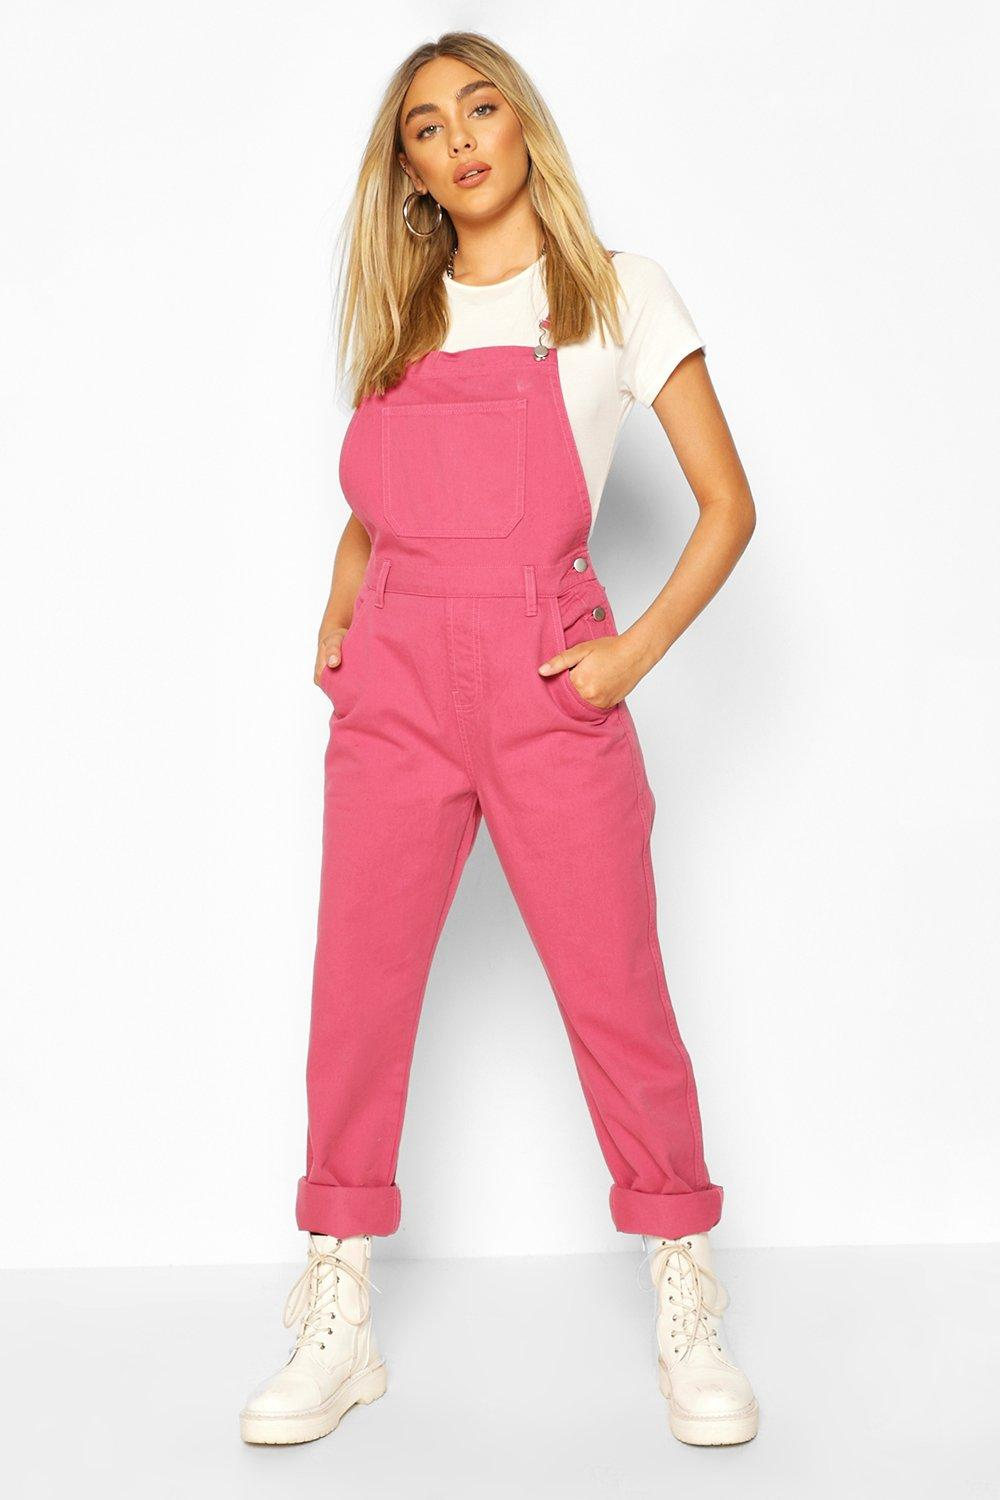 Vintage High Waisted Trousers, Sailor Pants, Jeans Womens Boyfriend Denim Overall - Pink - 12 $27.00 AT vintagedancer.com